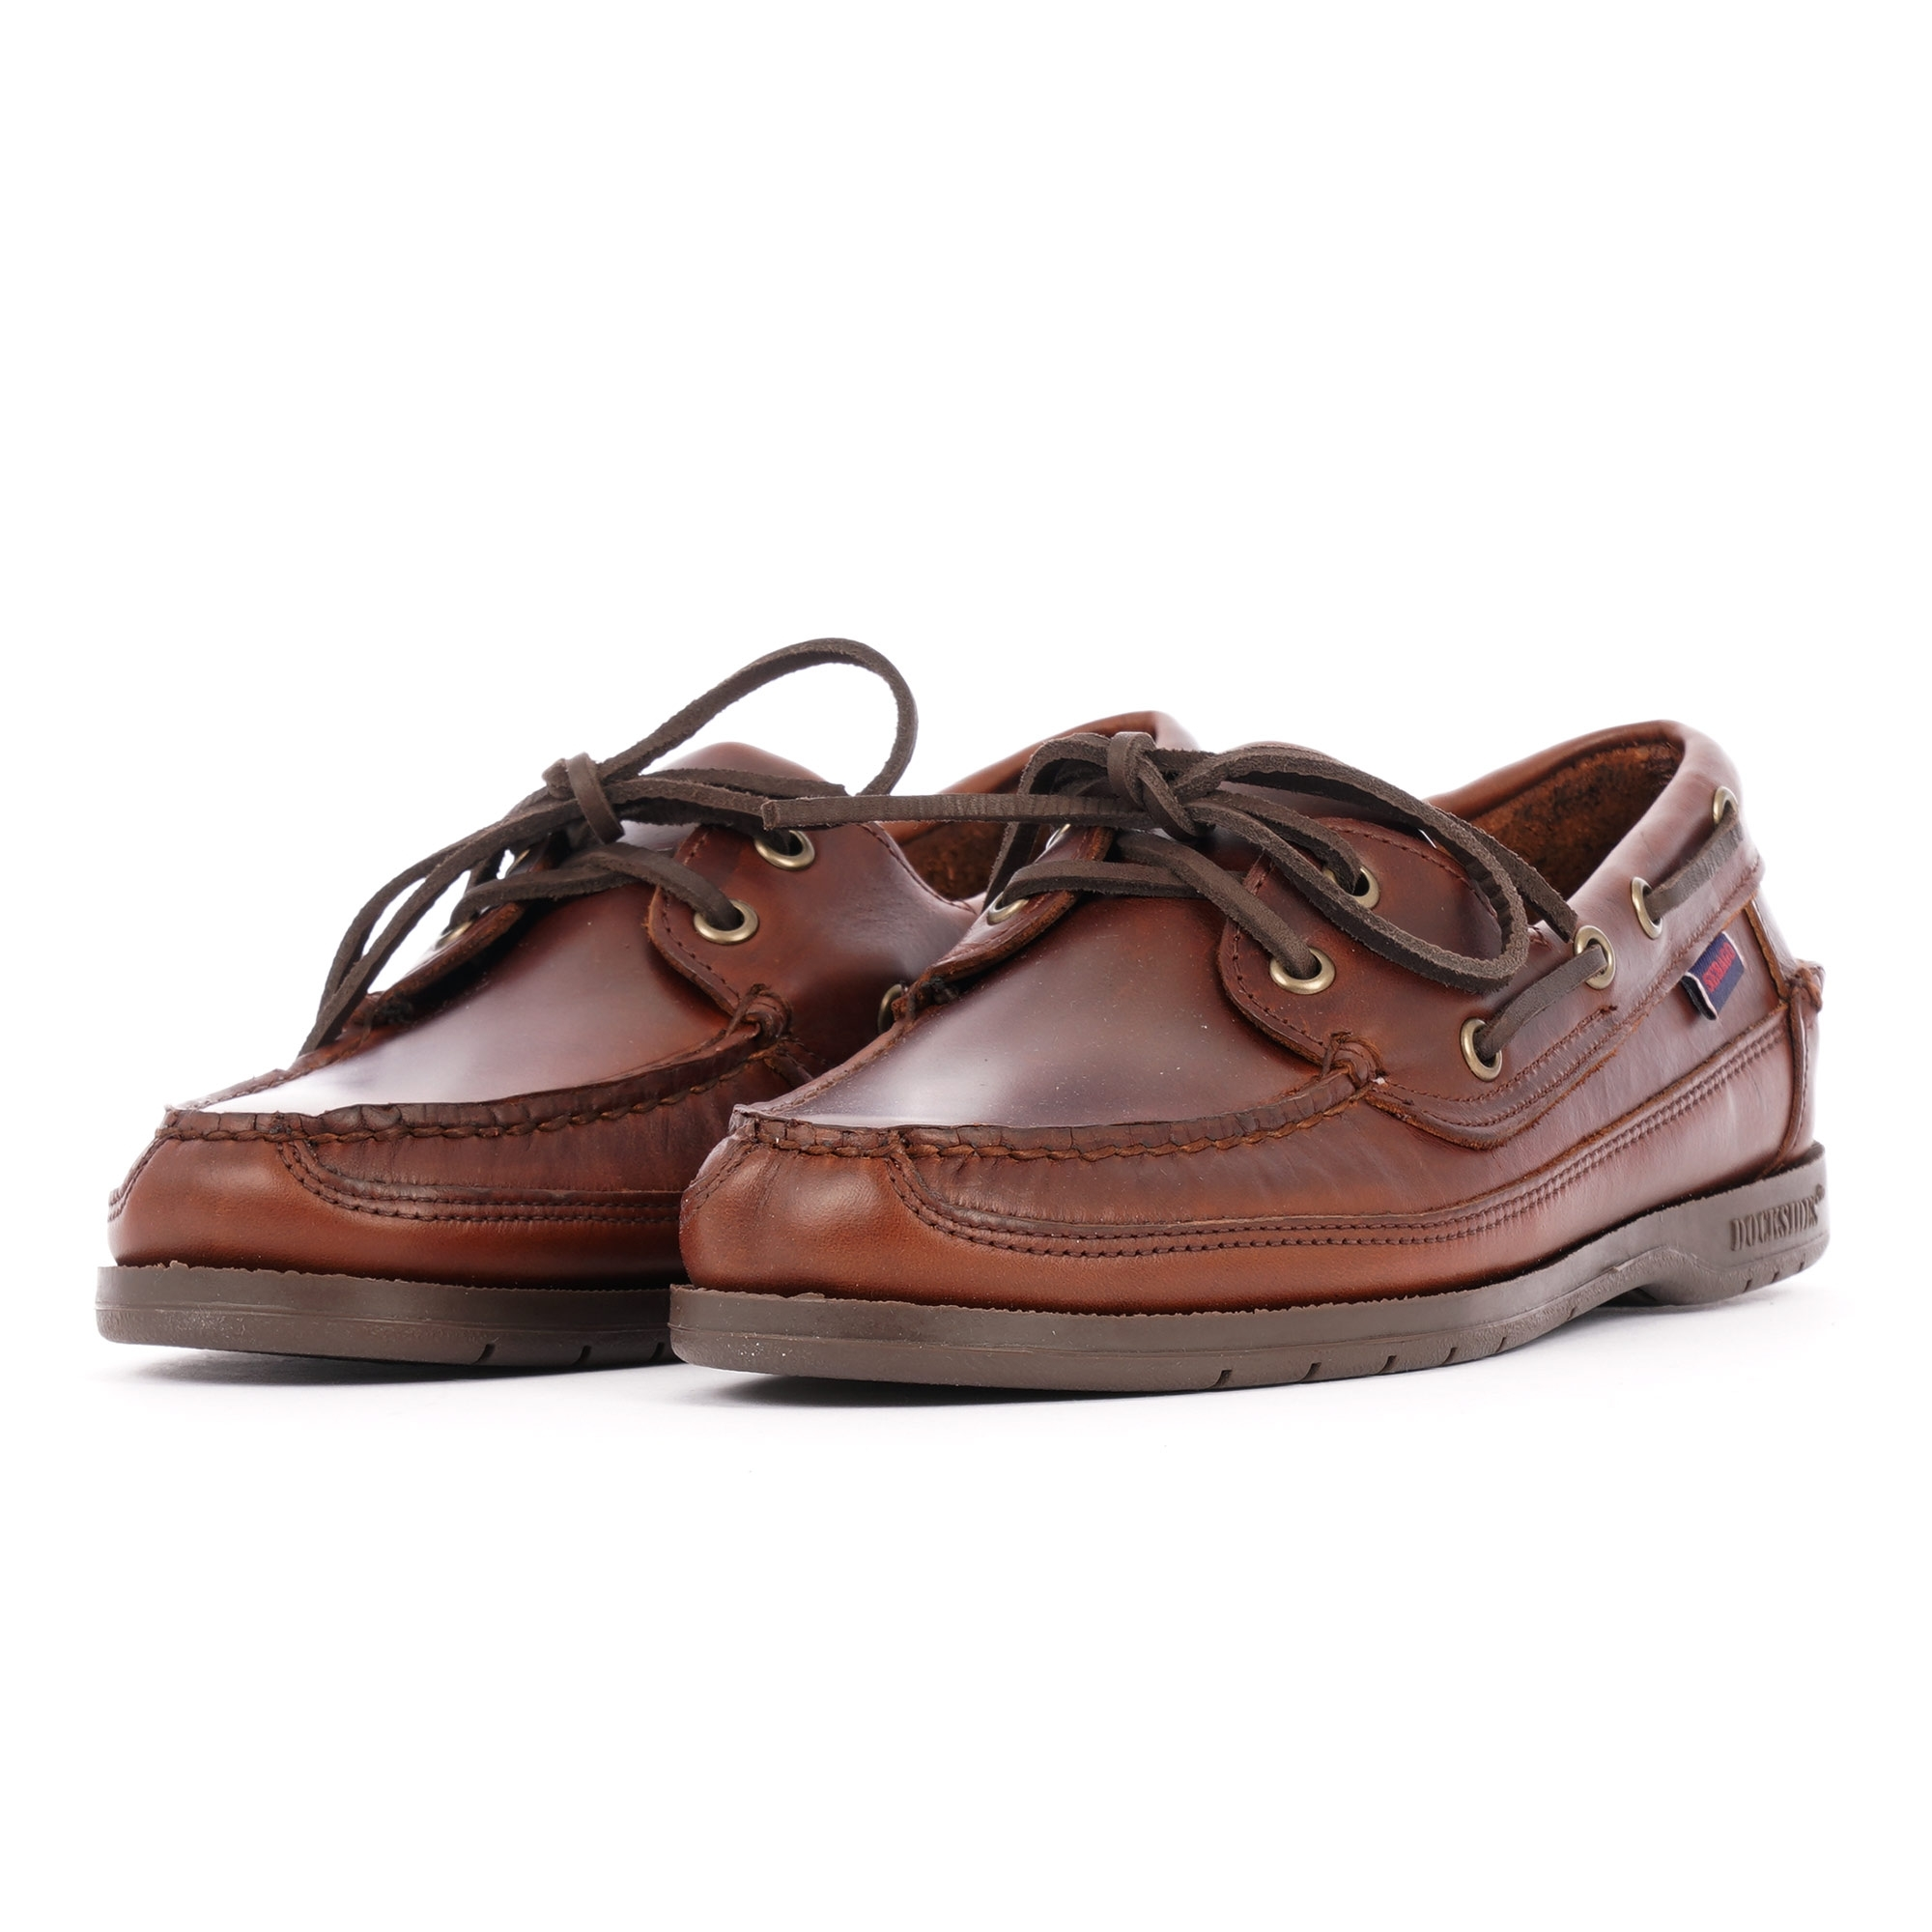 sebago-boat-shoes